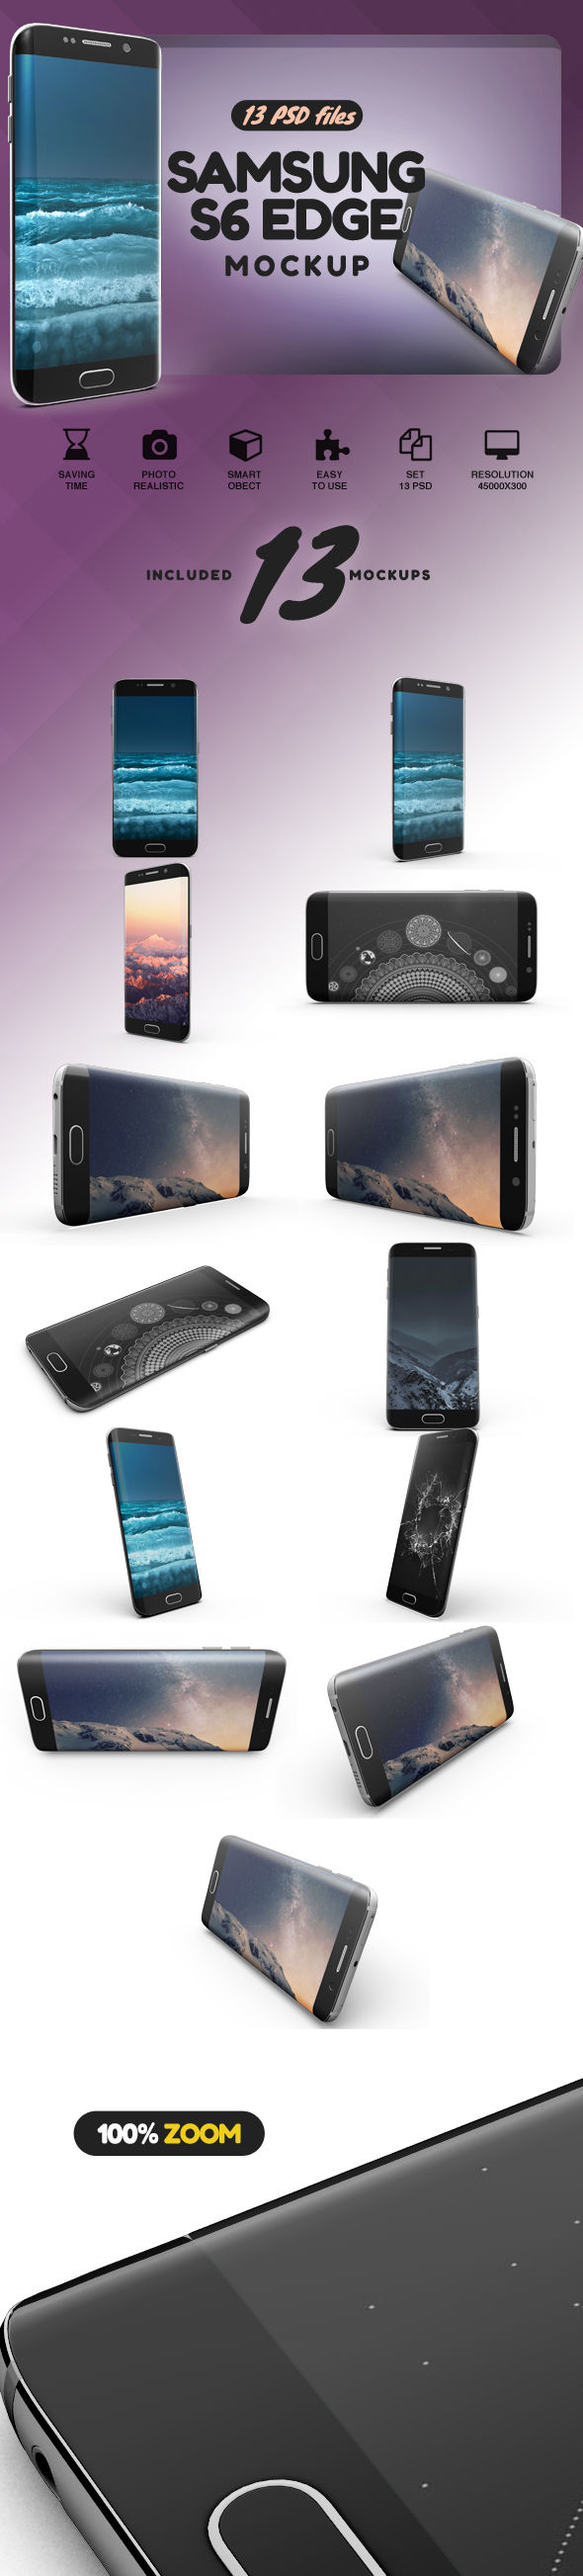 Download Samsung Case Mockup Psd Free Yellowimages